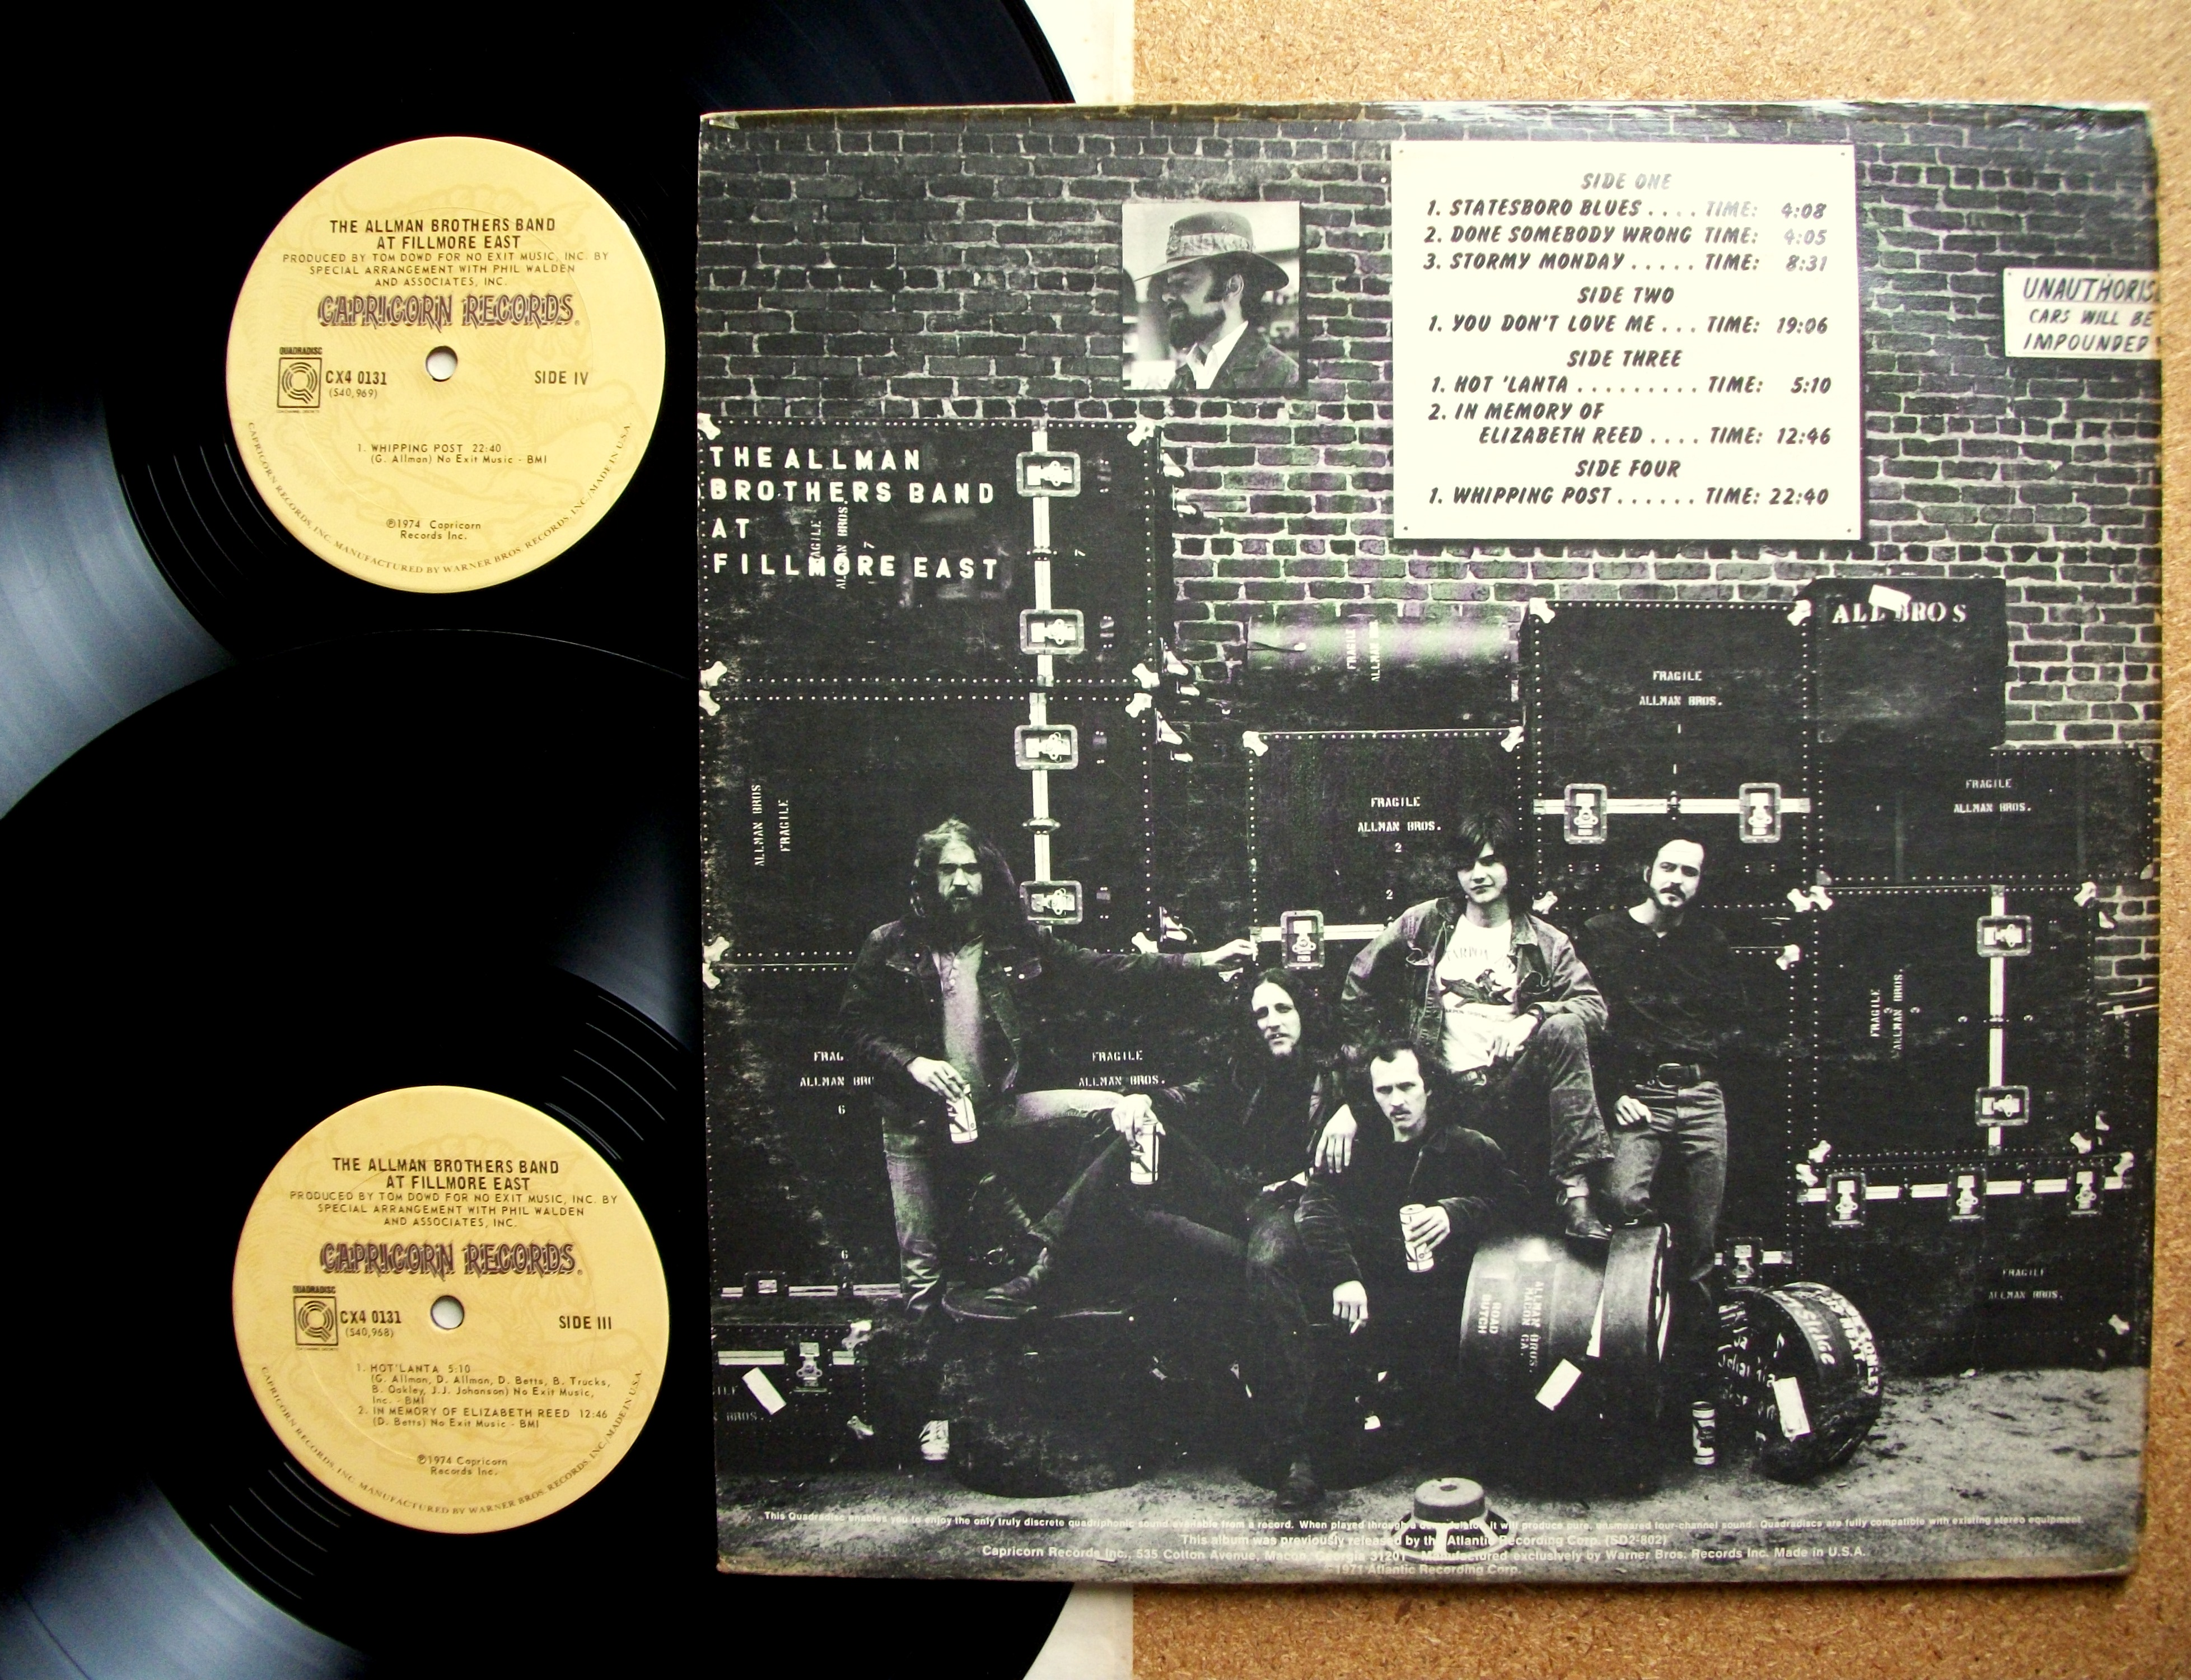 The Allman Brothers Band - Live at the Filmore East (1971)